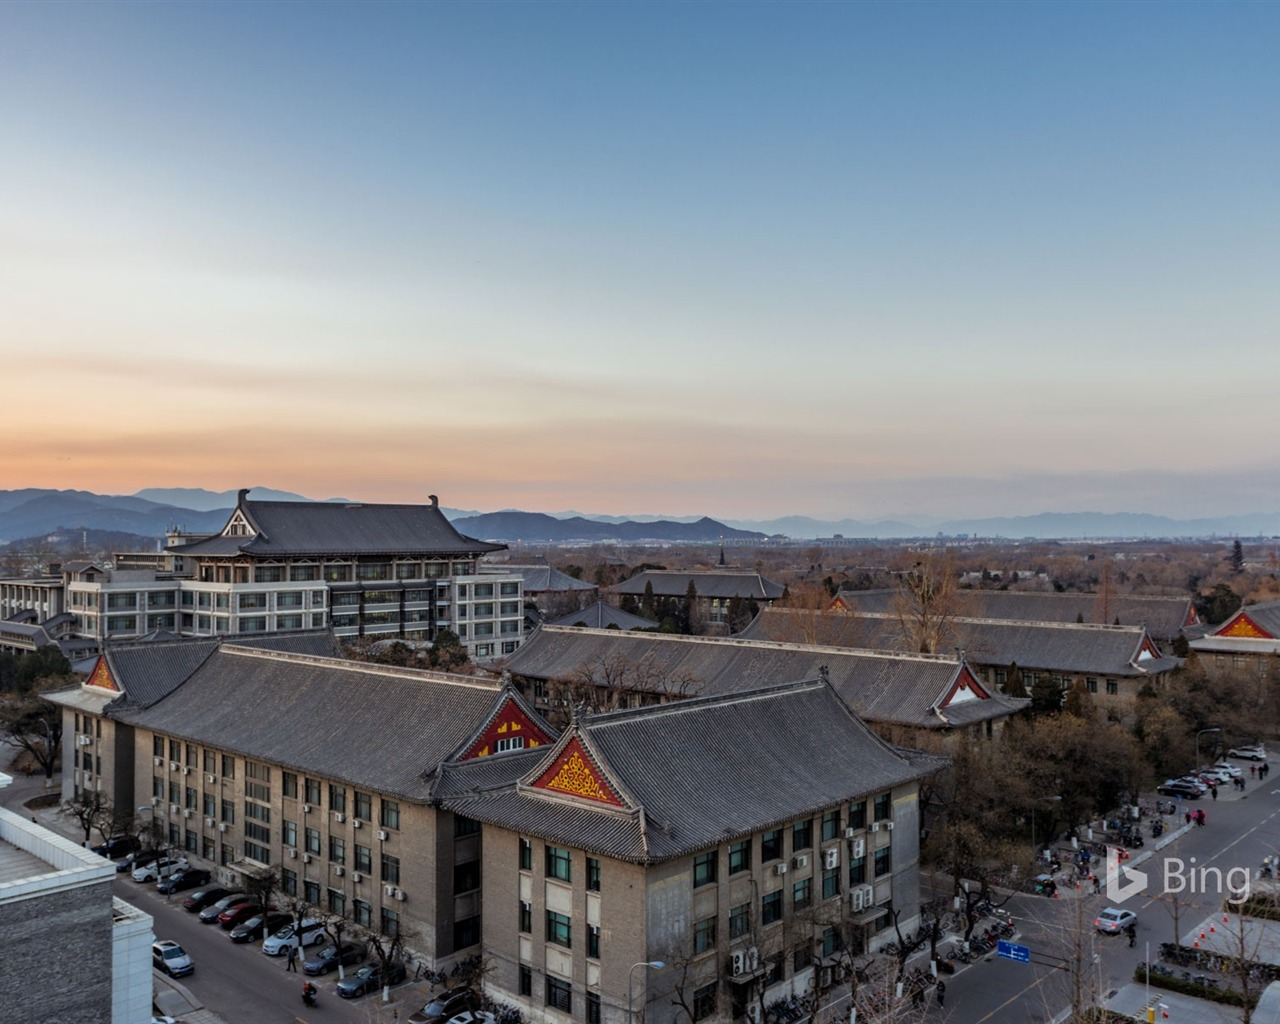 China Beijing Peking University Sunset 2018 Bing - 1280x1024 wallpaper download